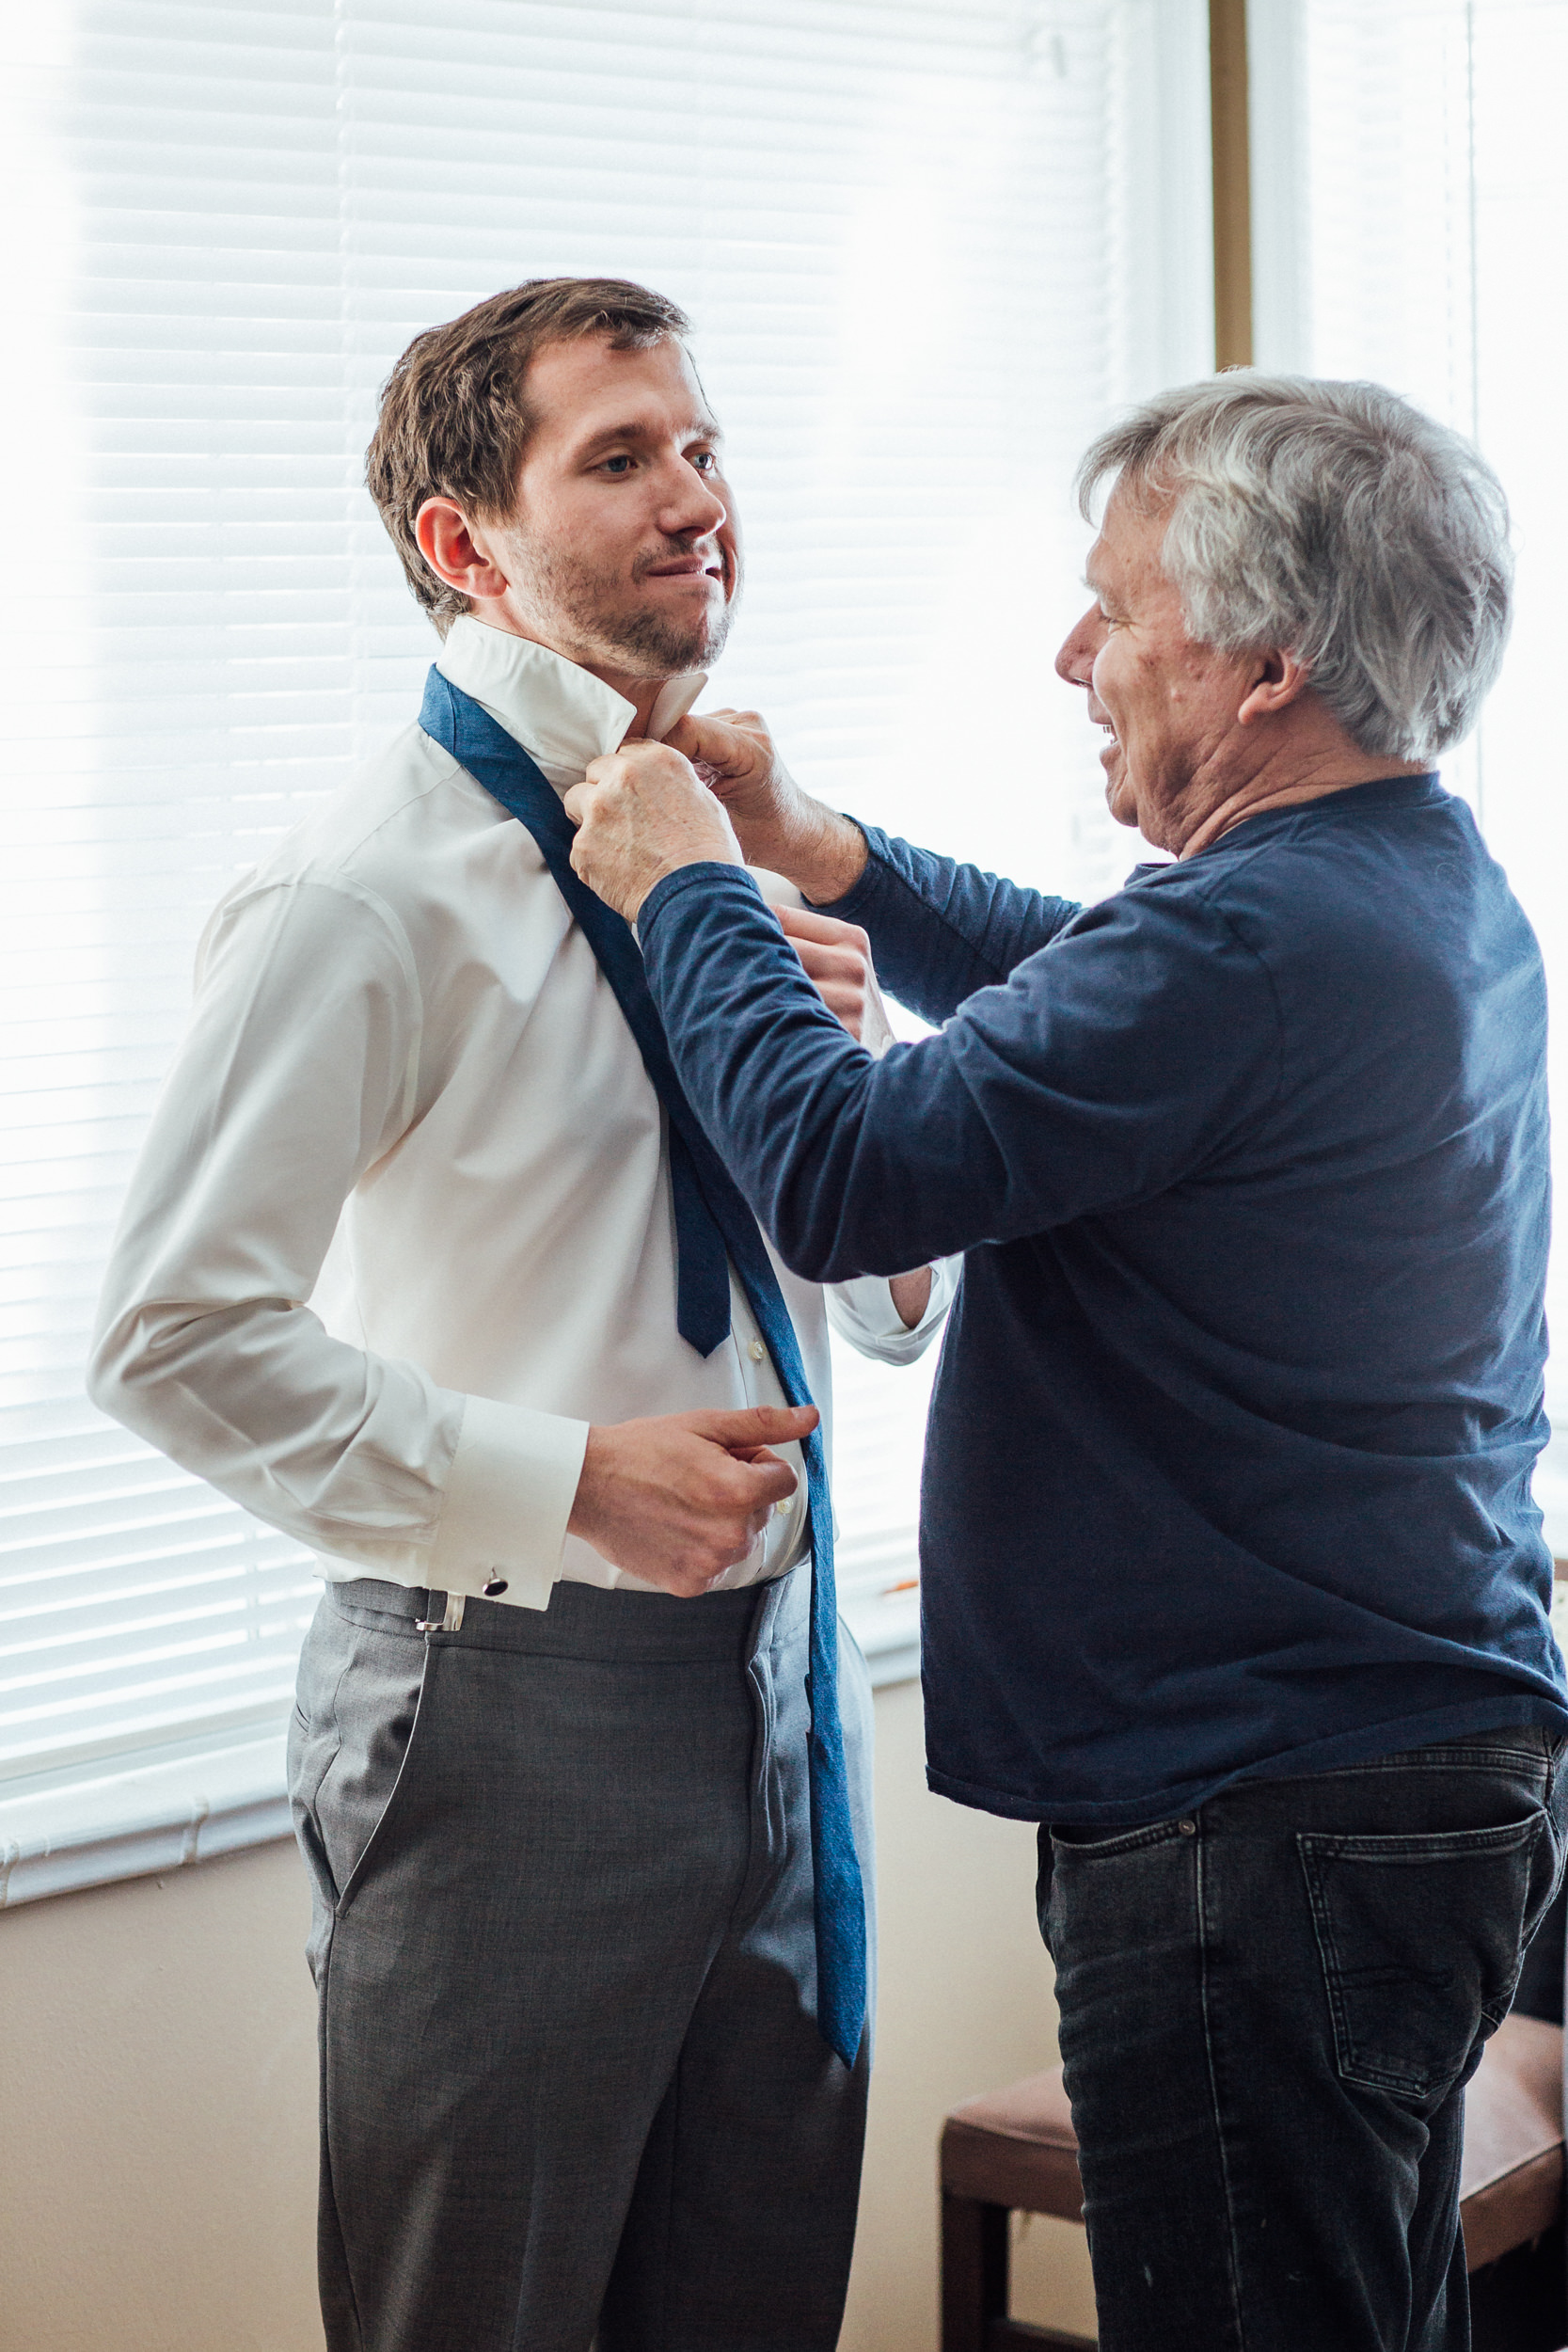 Dad and Groom getting ready-Wedding Photographer